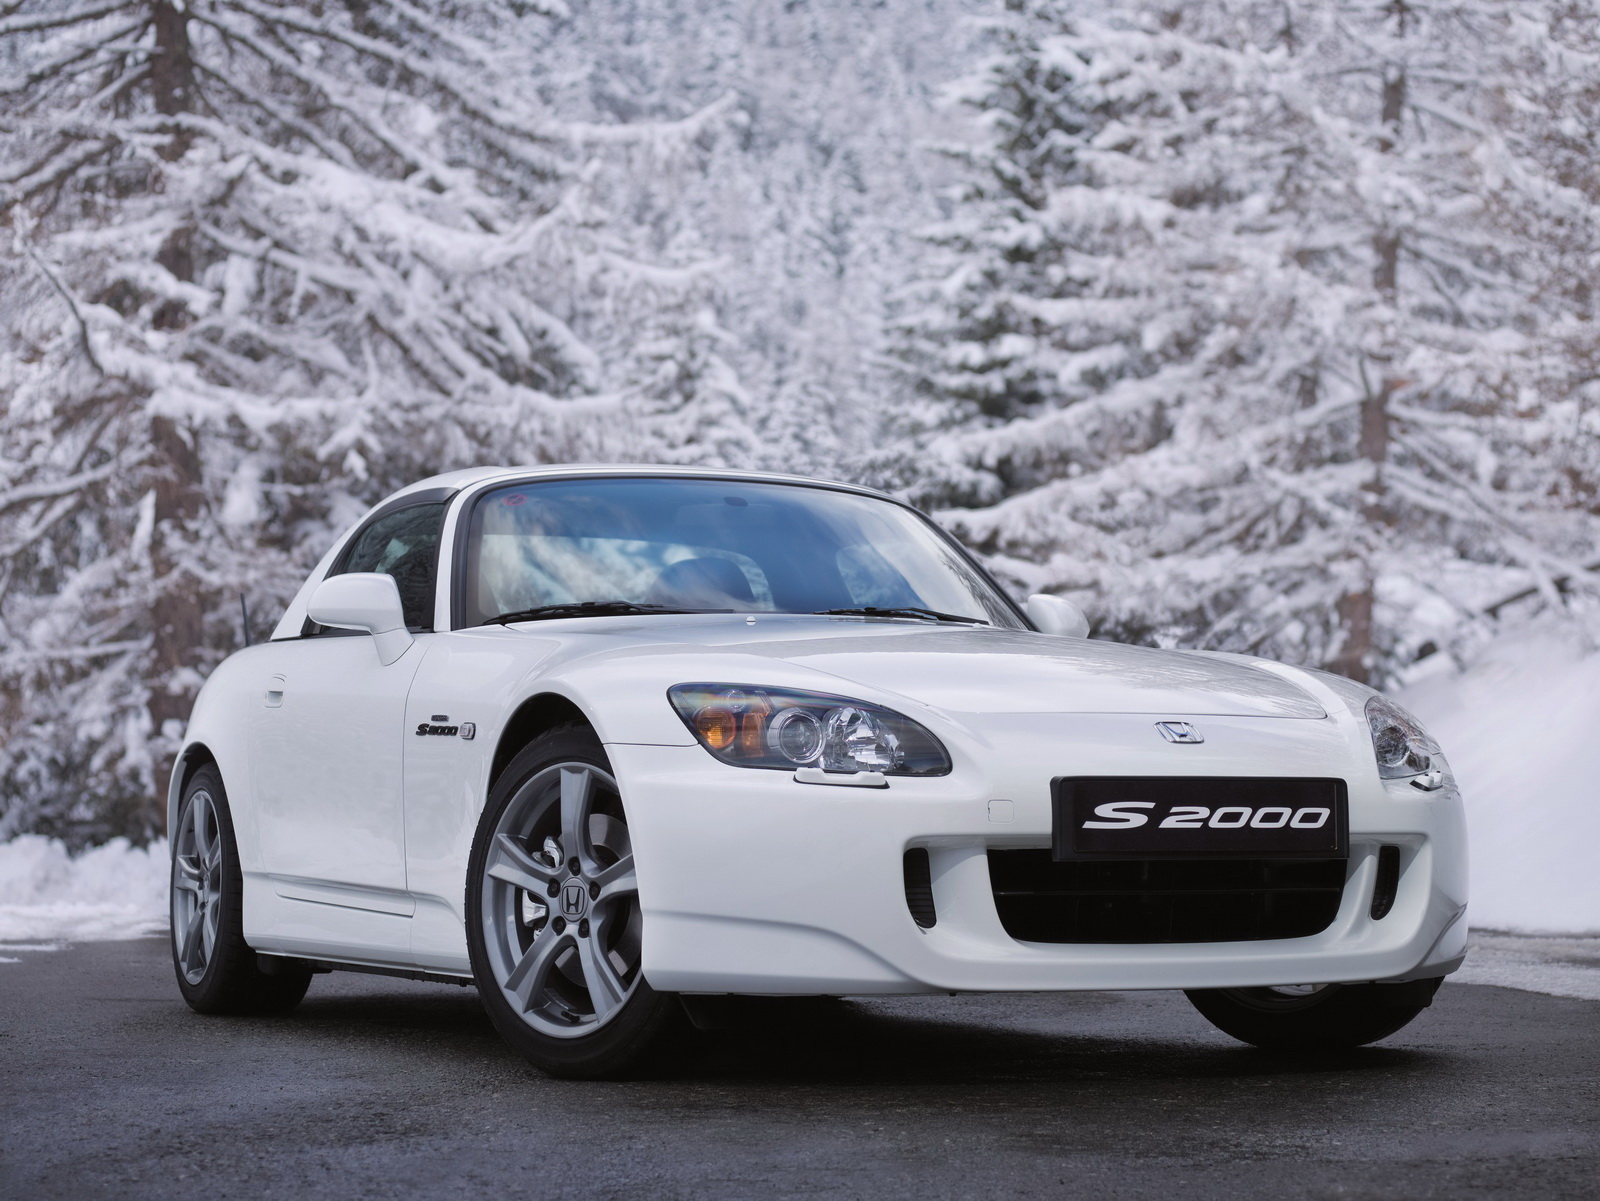 Revived Honda S2000 May Get 320 HP TwinCharged InlineFour